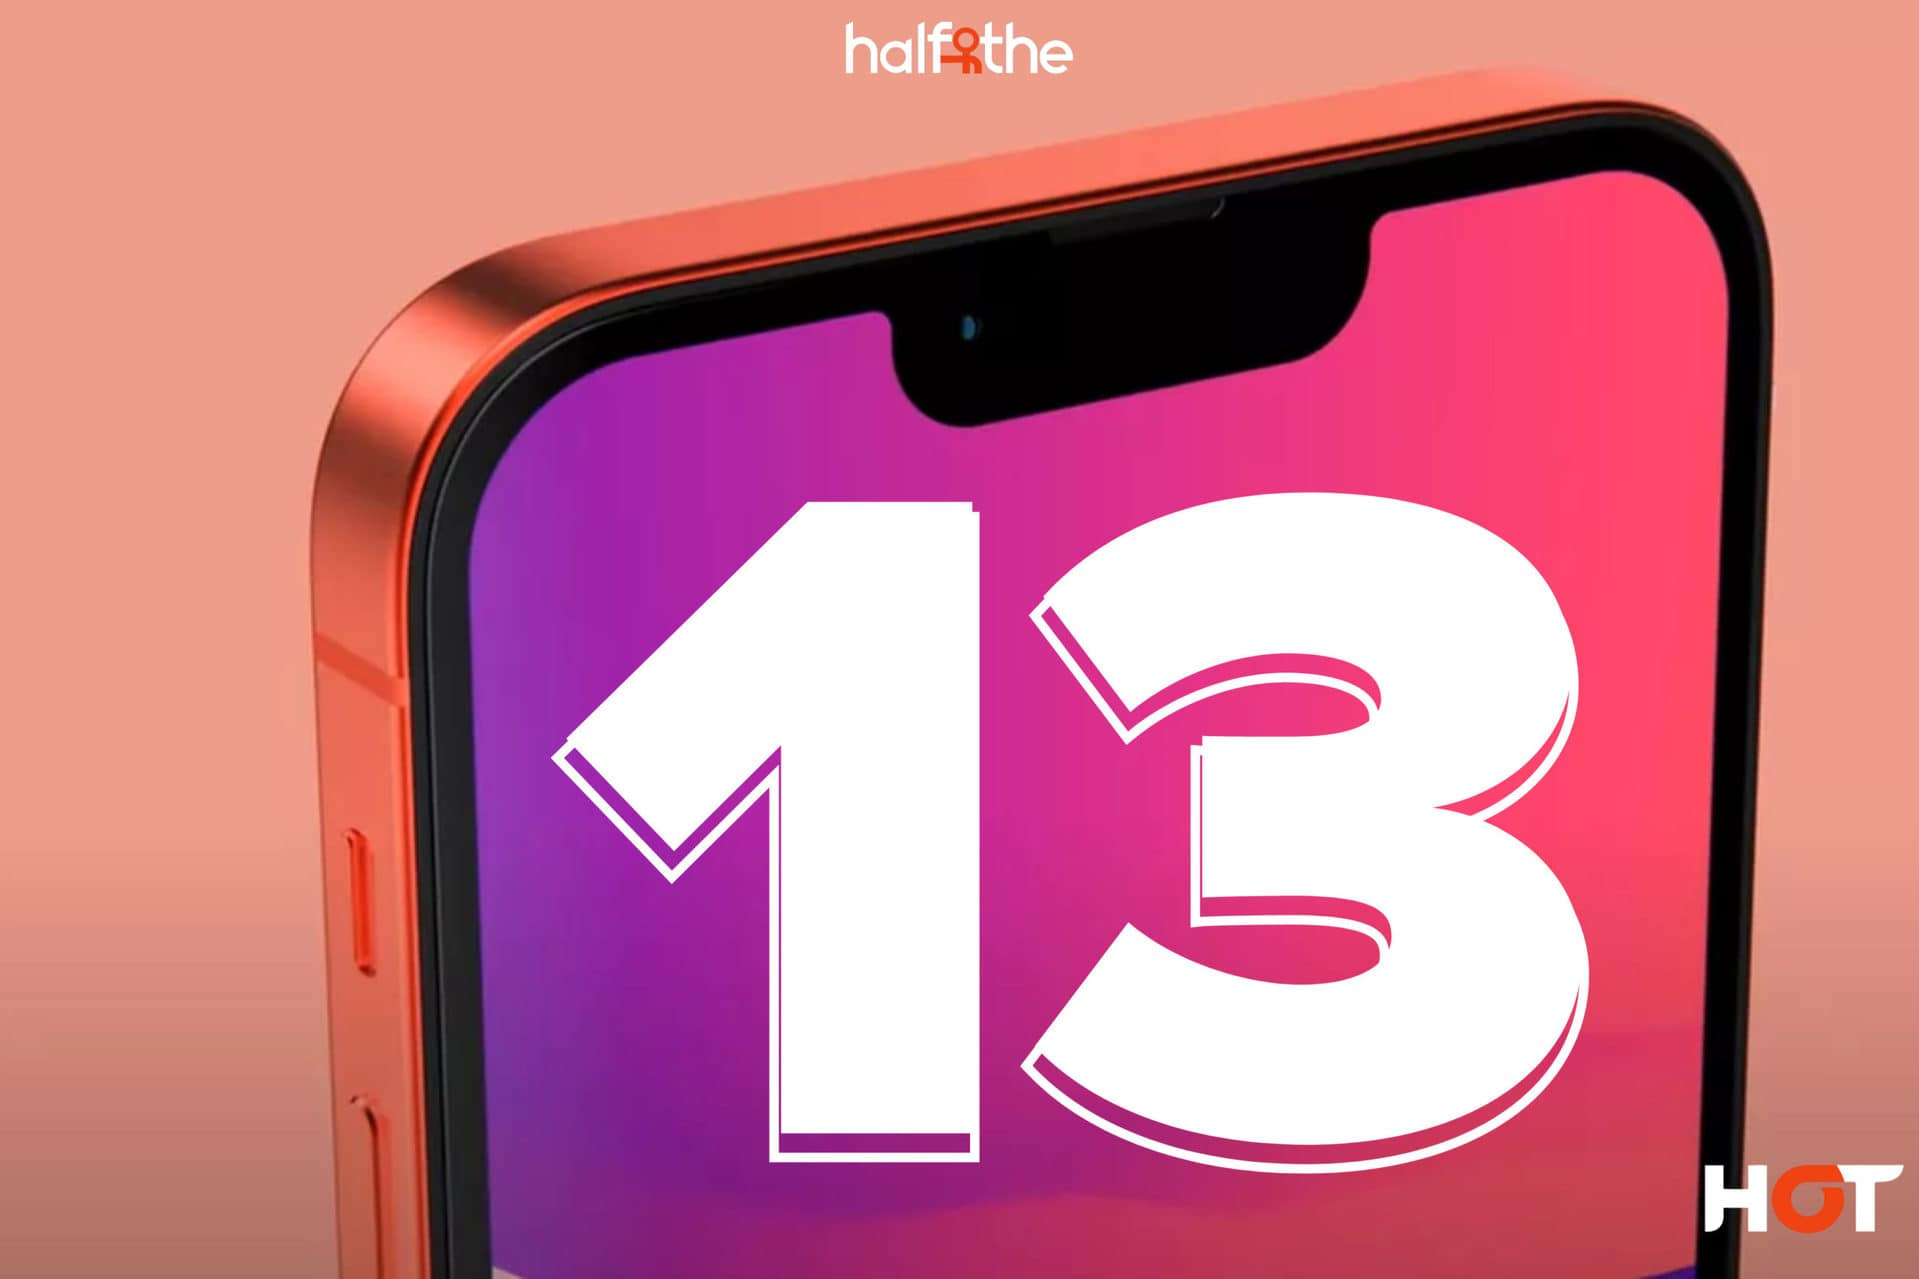 What are the expected features in iPhone 13 that are worth wait?